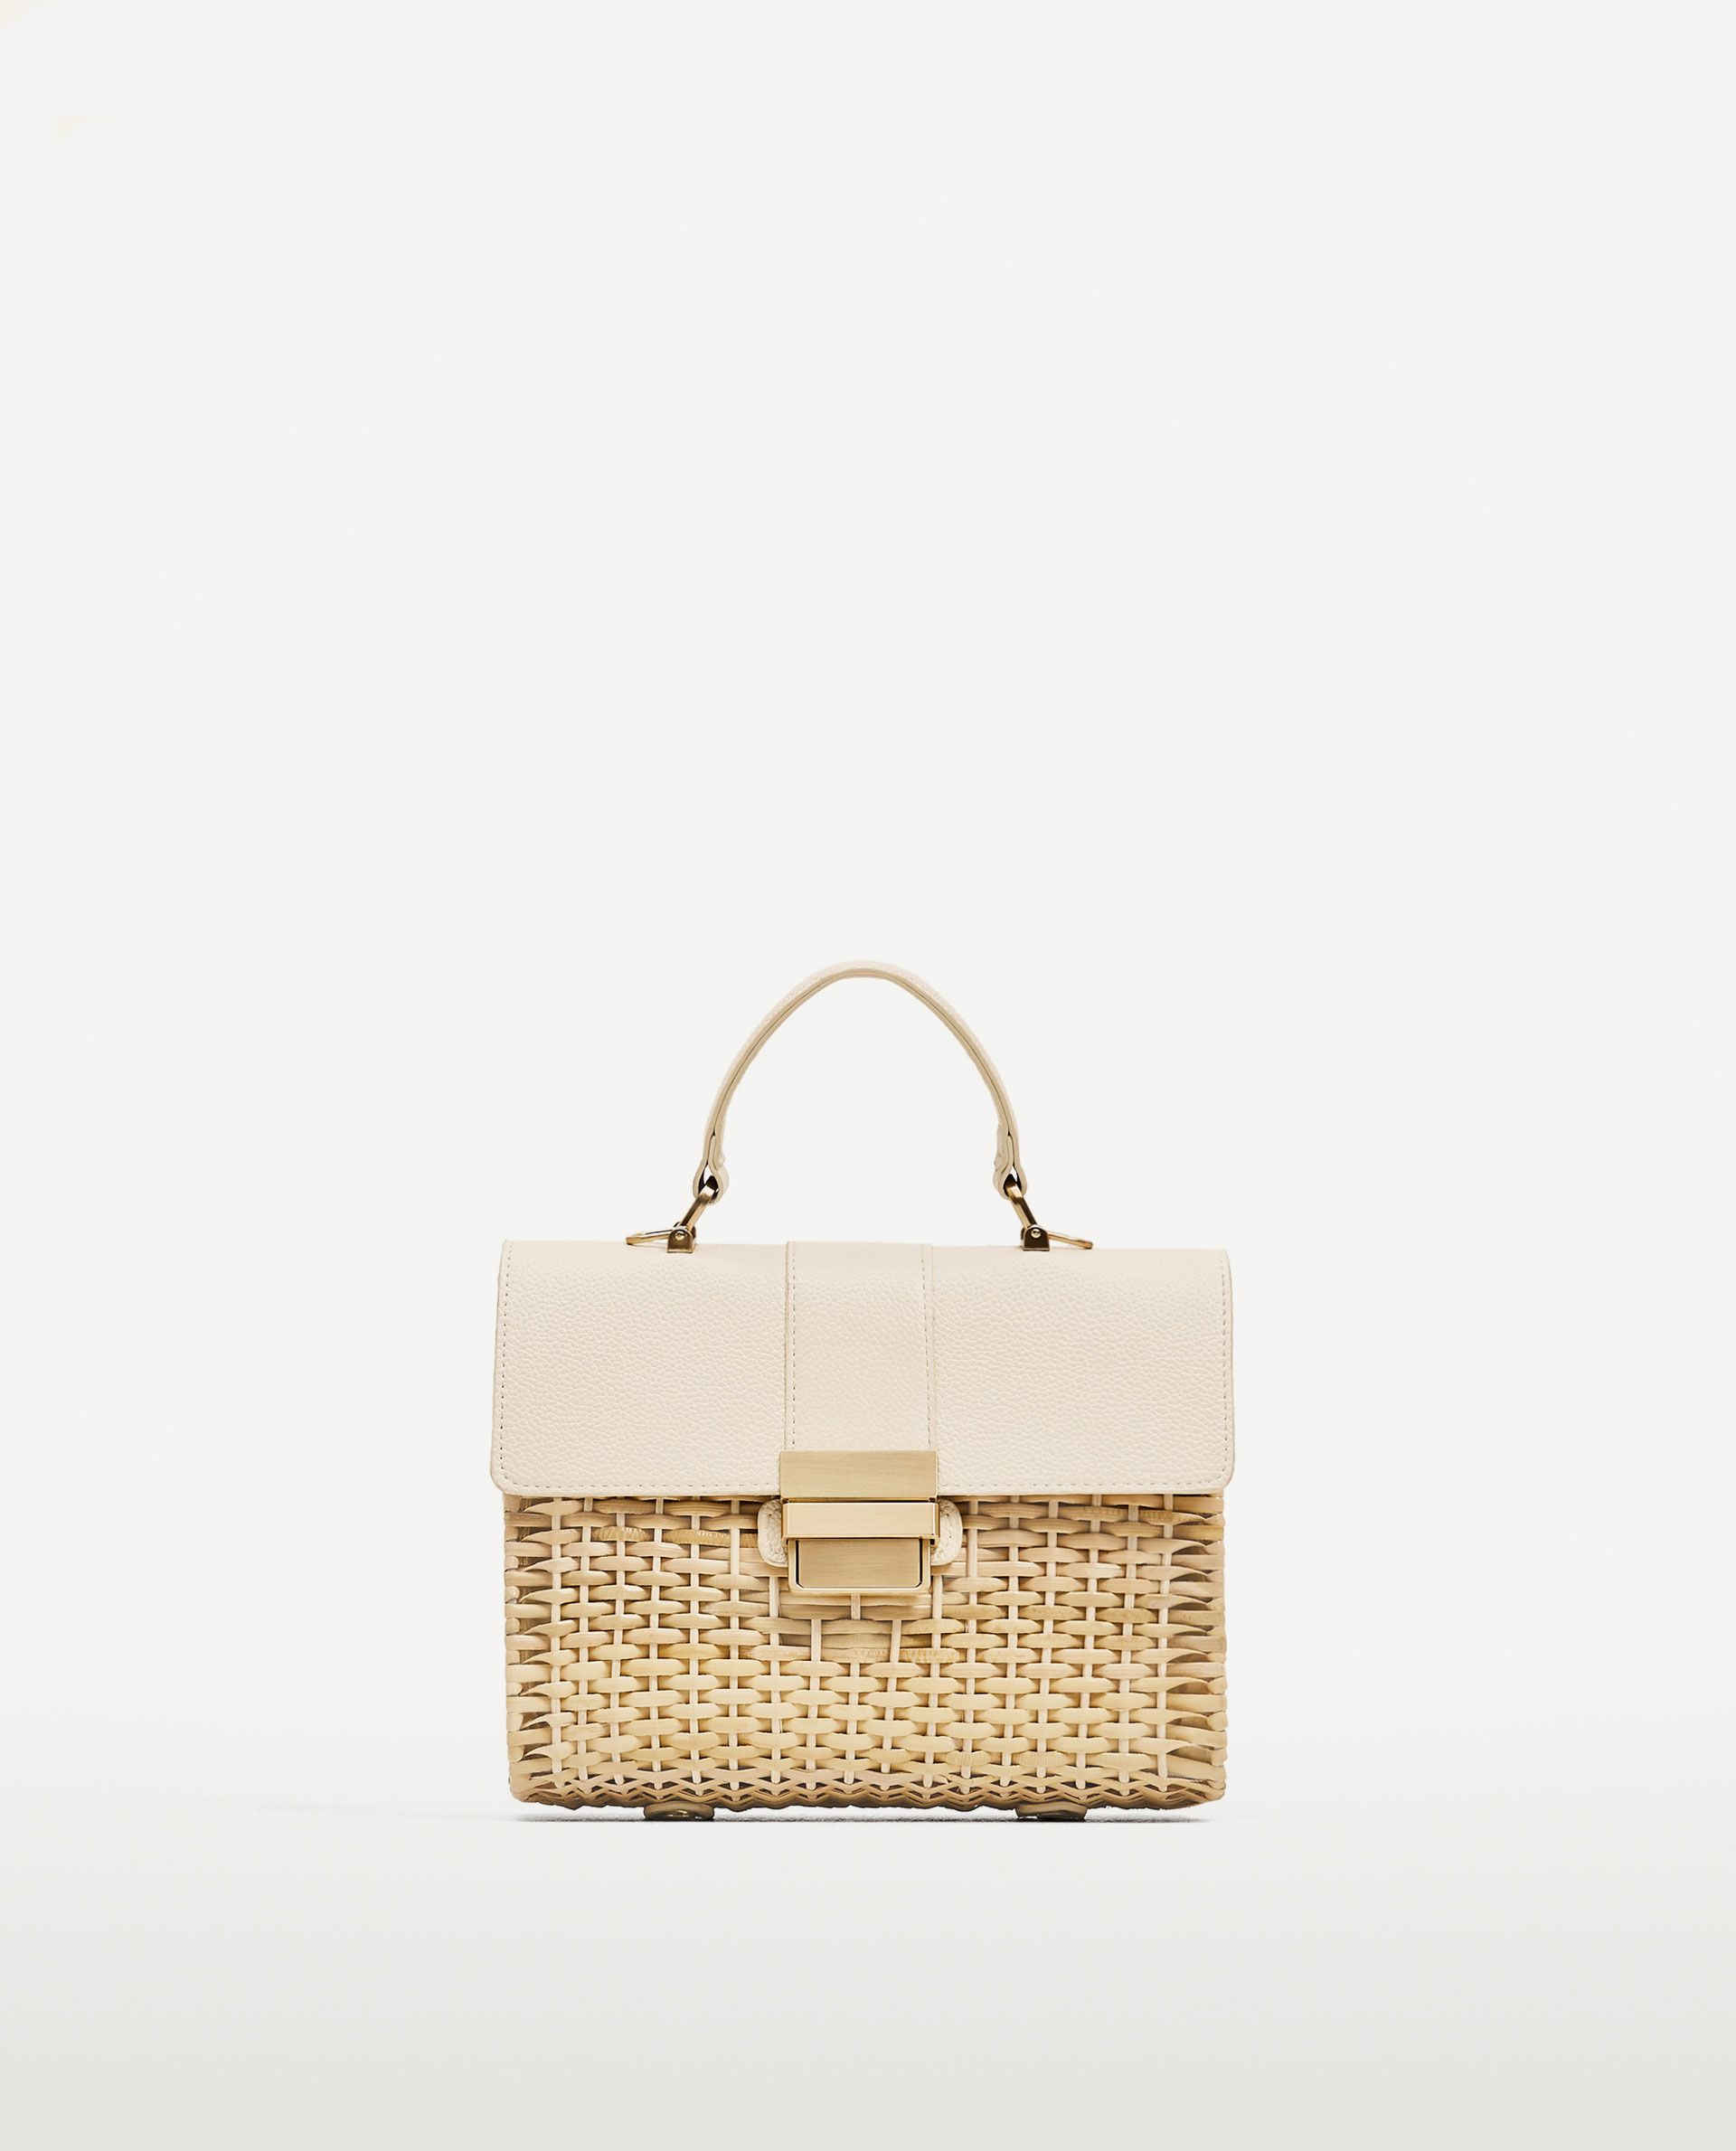 17 Basket Bags We're Very Into RightNow pictures